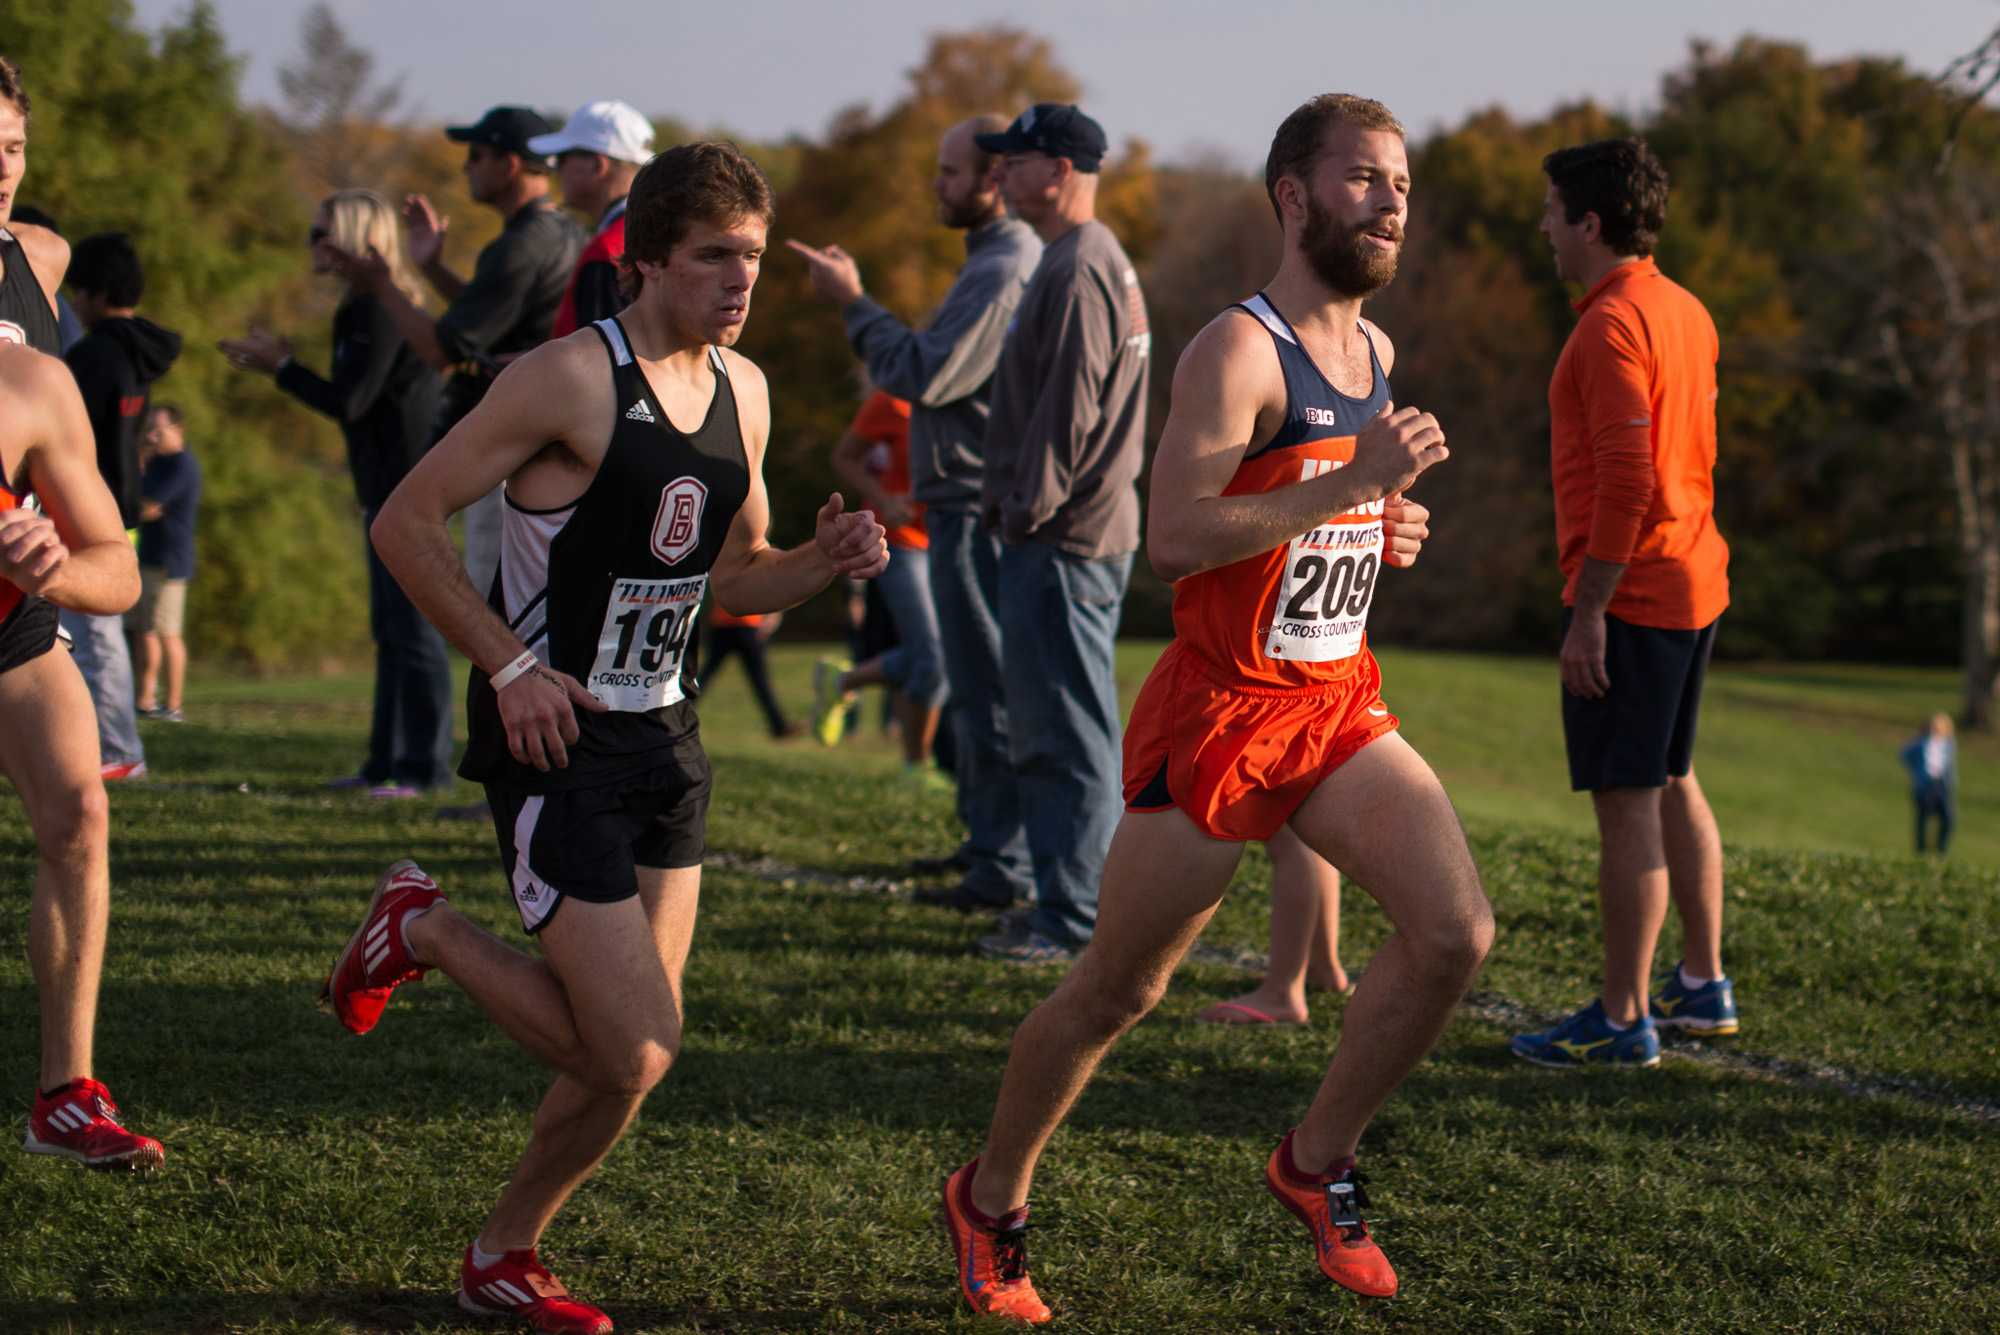 Illinois' Alex Notten (209), freshman, outpaces his opponents at the Illini Open 2014 at the Arborteum on October 25th.